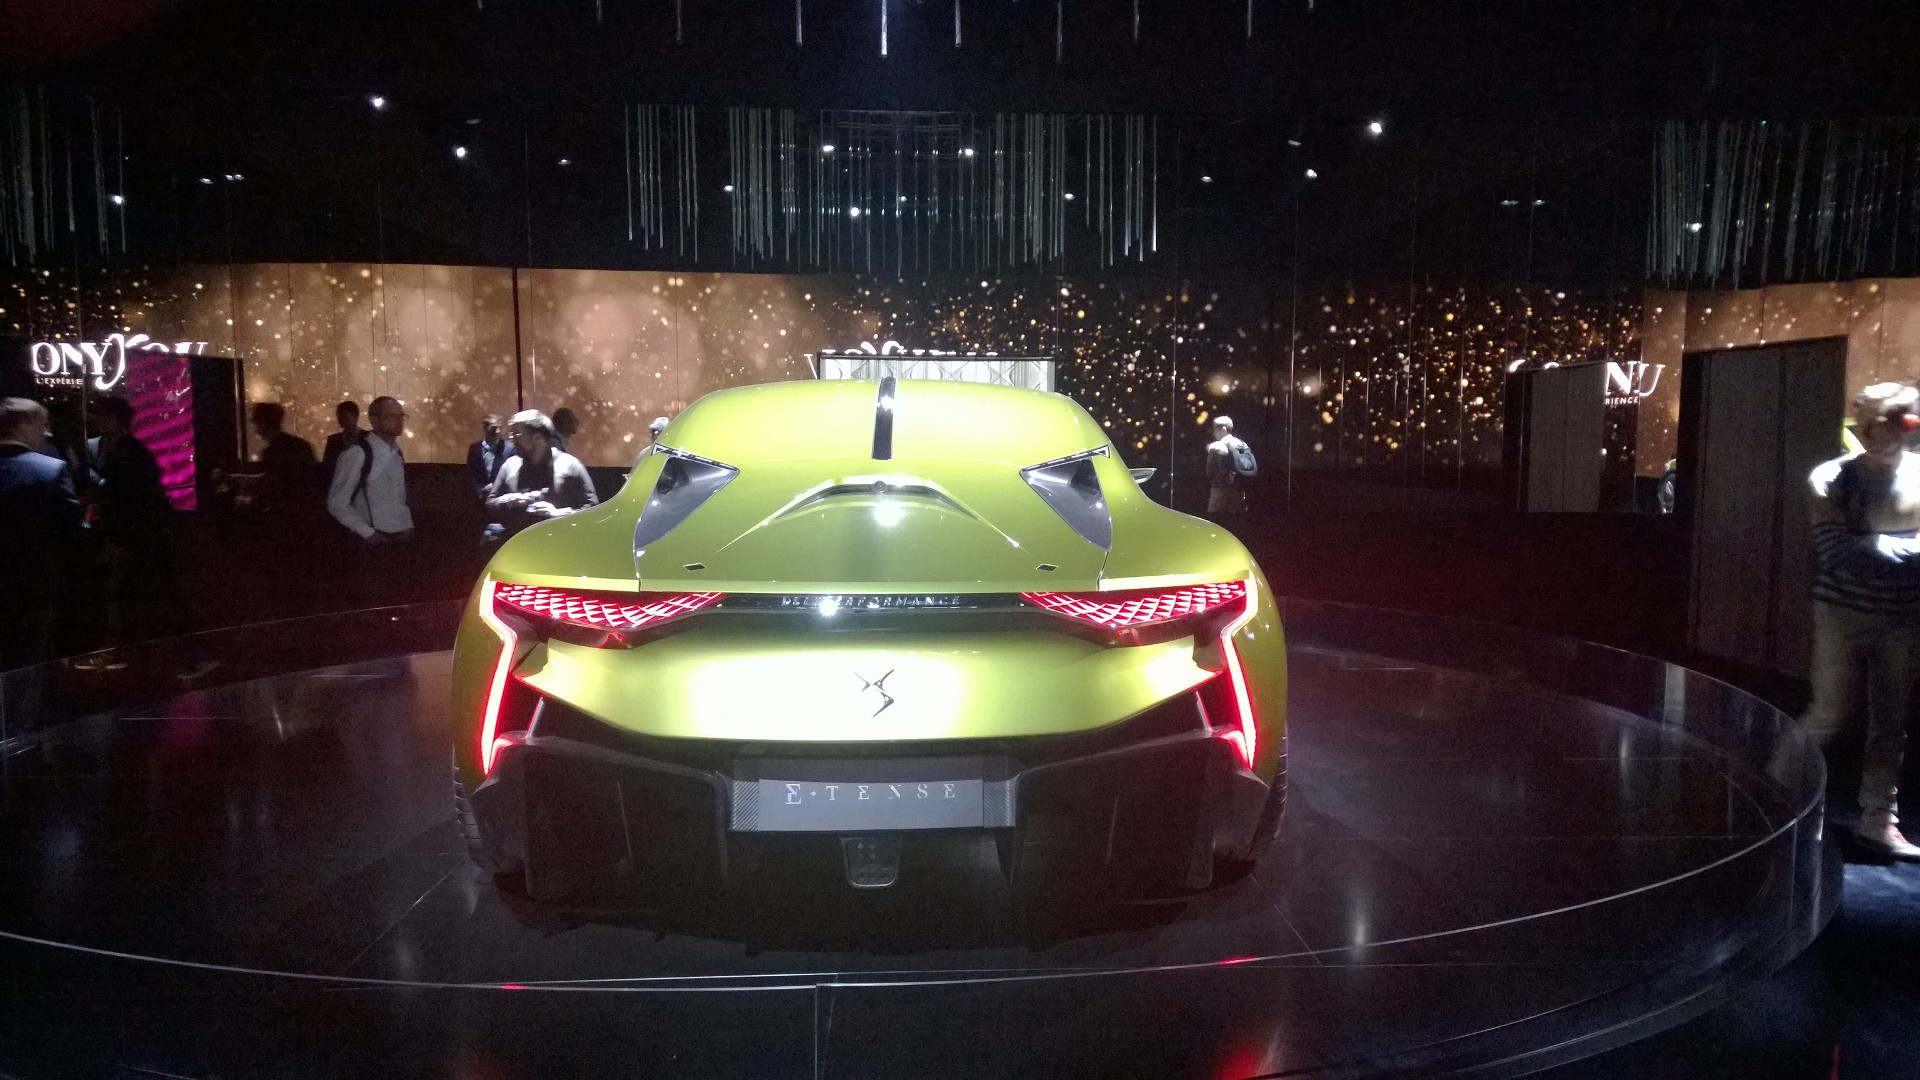 DS Automobiles - E-Tense - arrière / rear - 2016 - Mondial Auto - photo ELJ DM